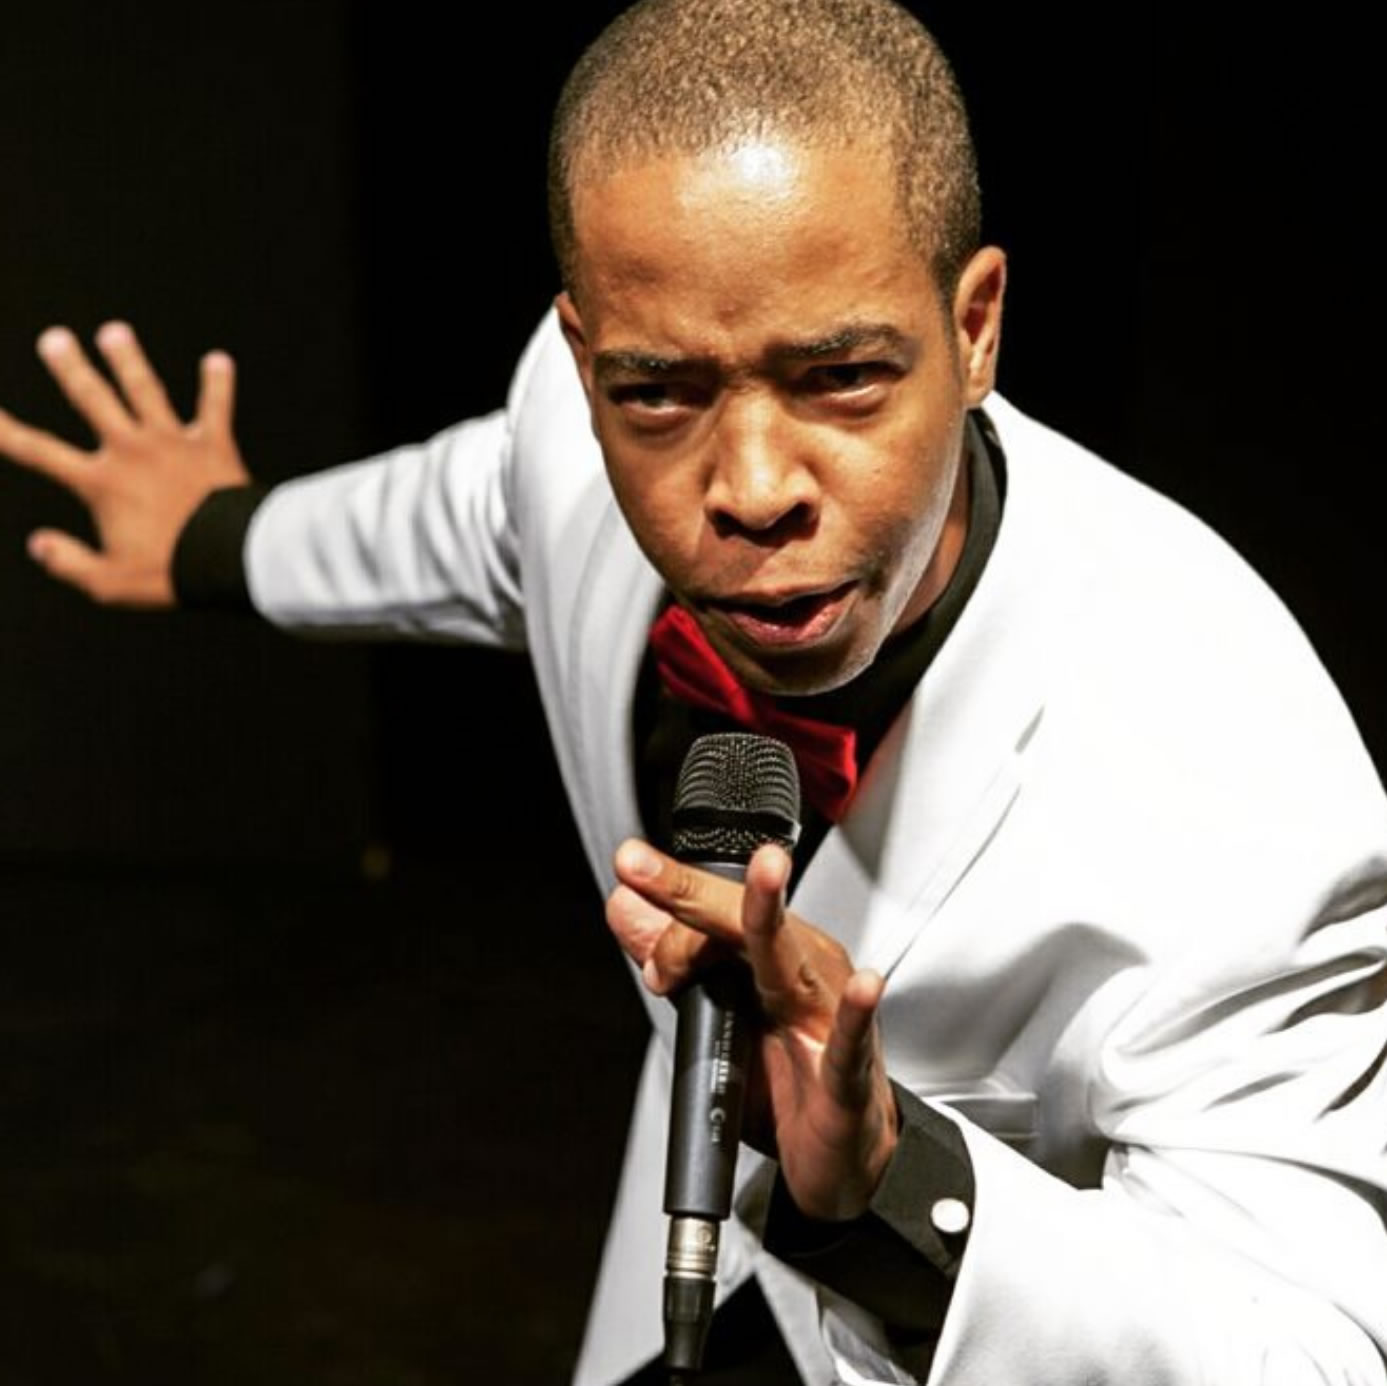 A man on stage wearing a white suit holds a microphone and leans forward toward the camera